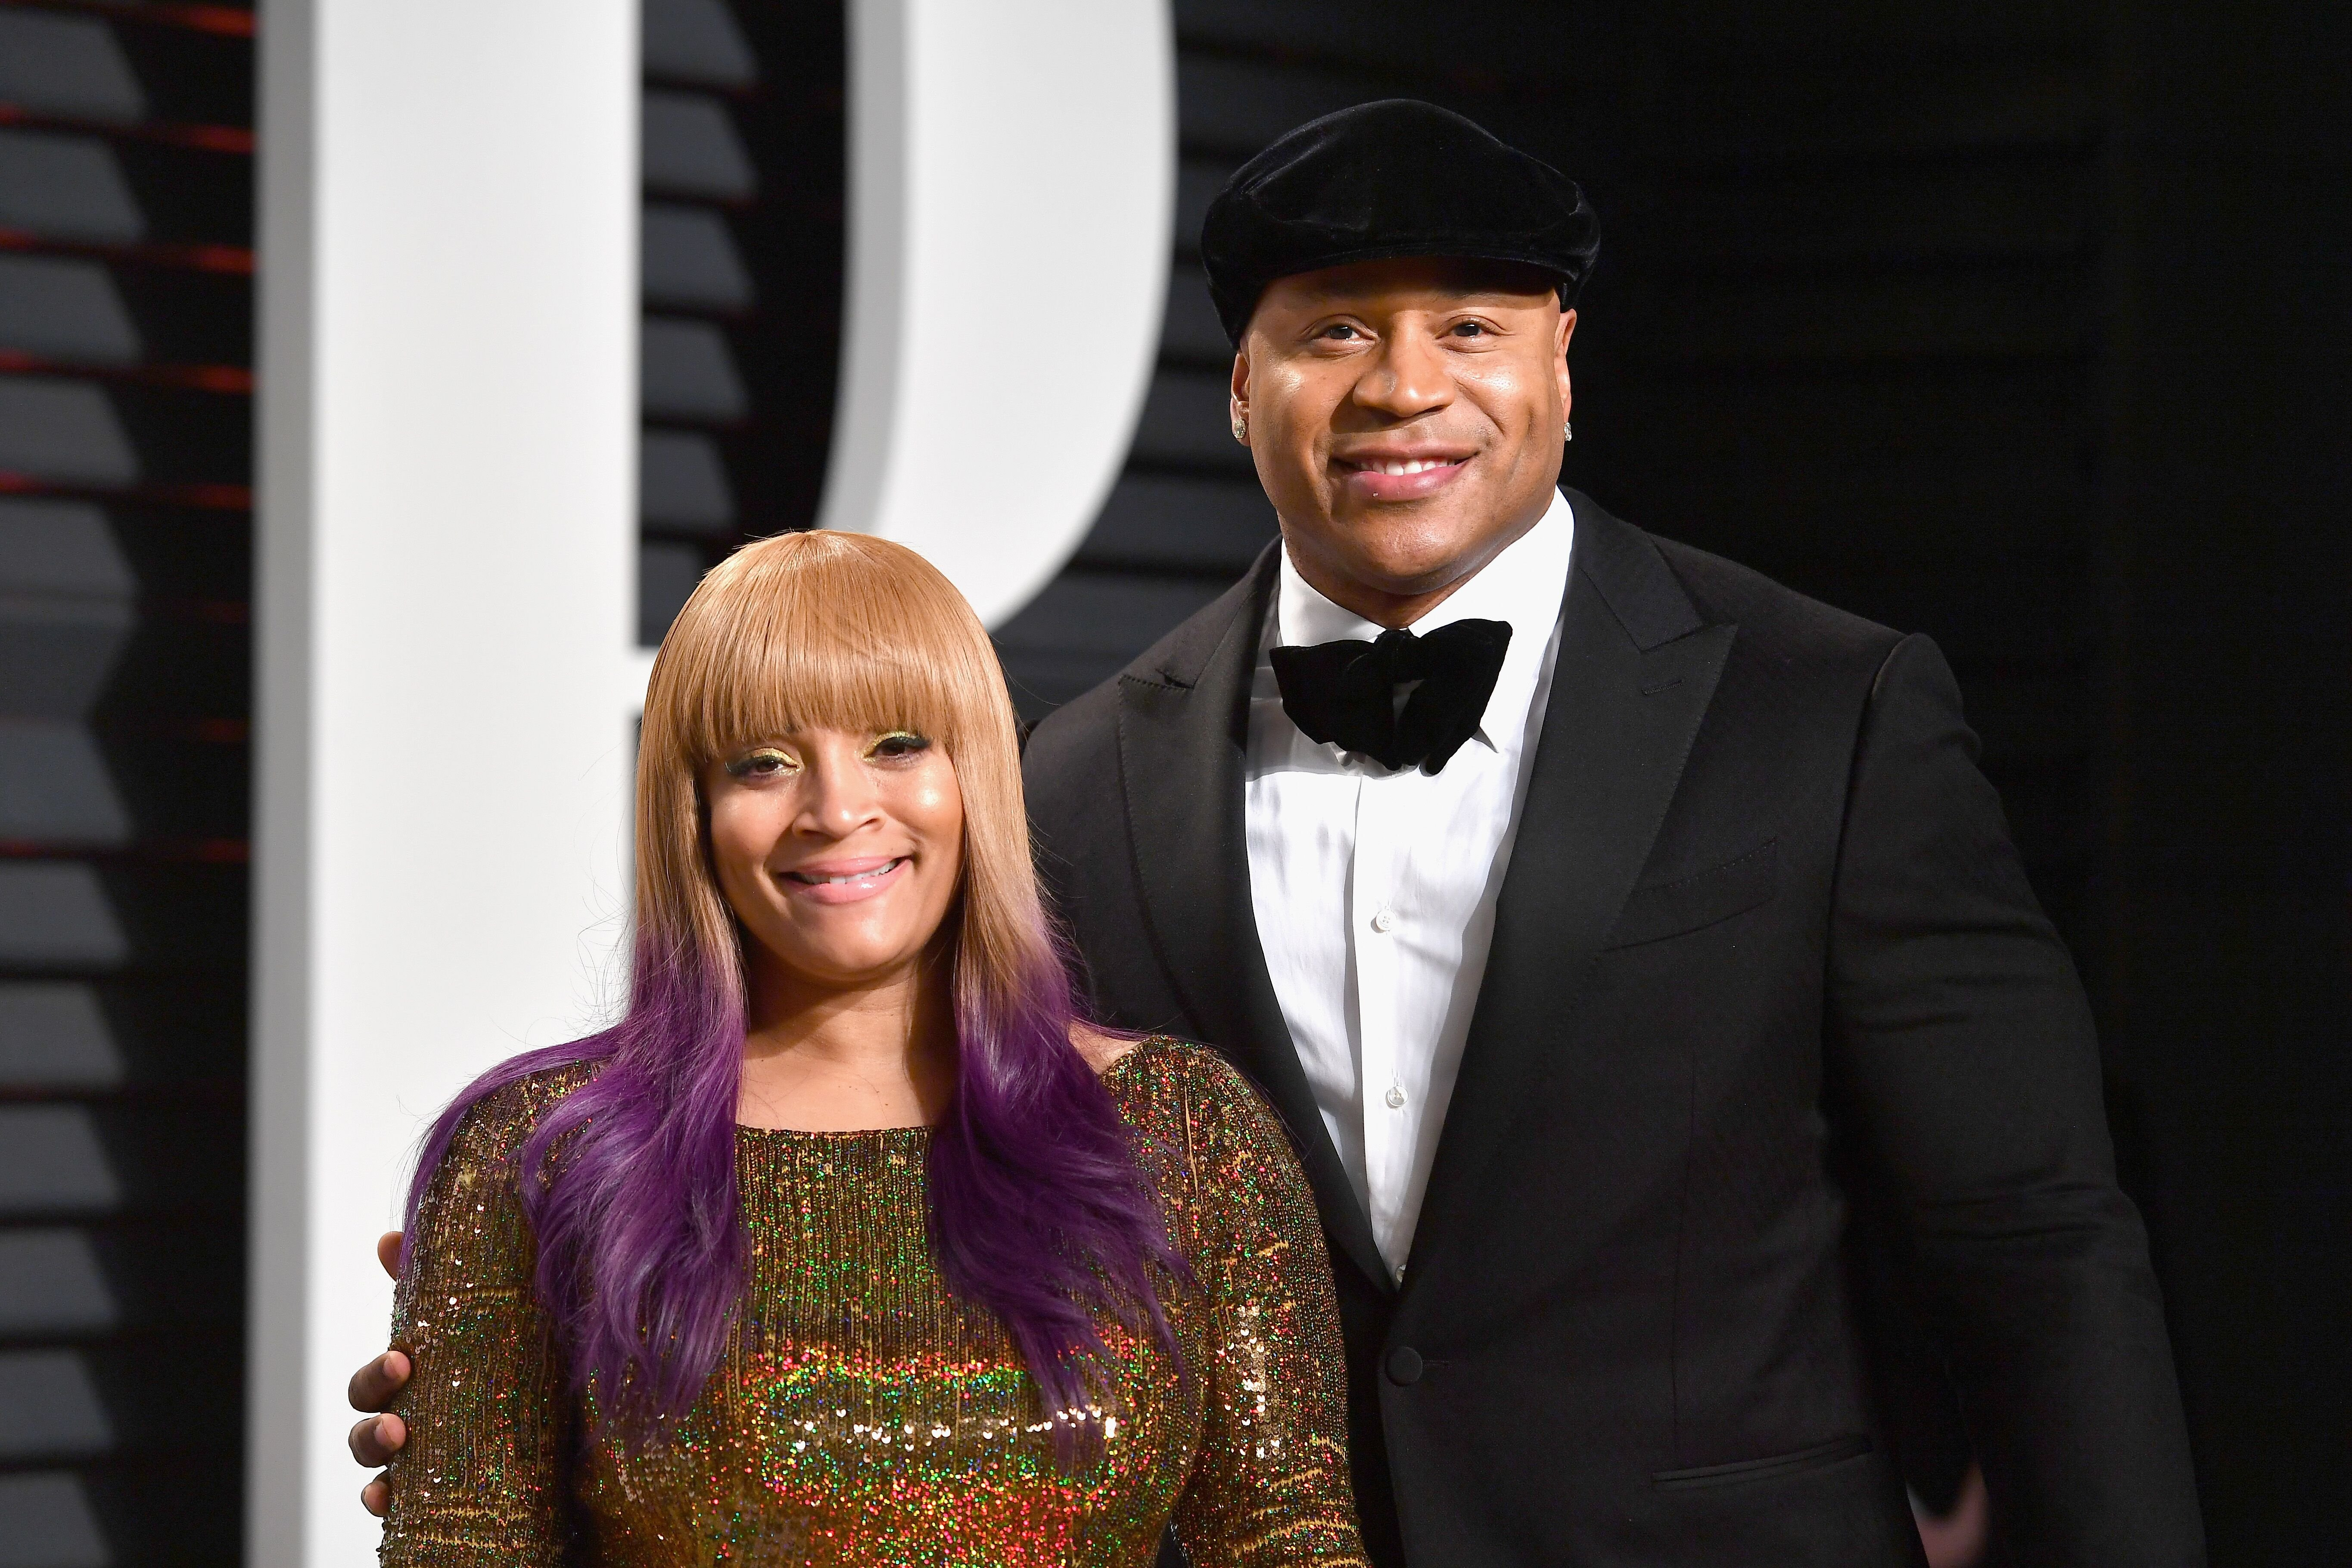 Simone Smith and LL Cool J at the 2017 Vanity Fair Oscar Party on February 26, 2017 | Source: Getty Images